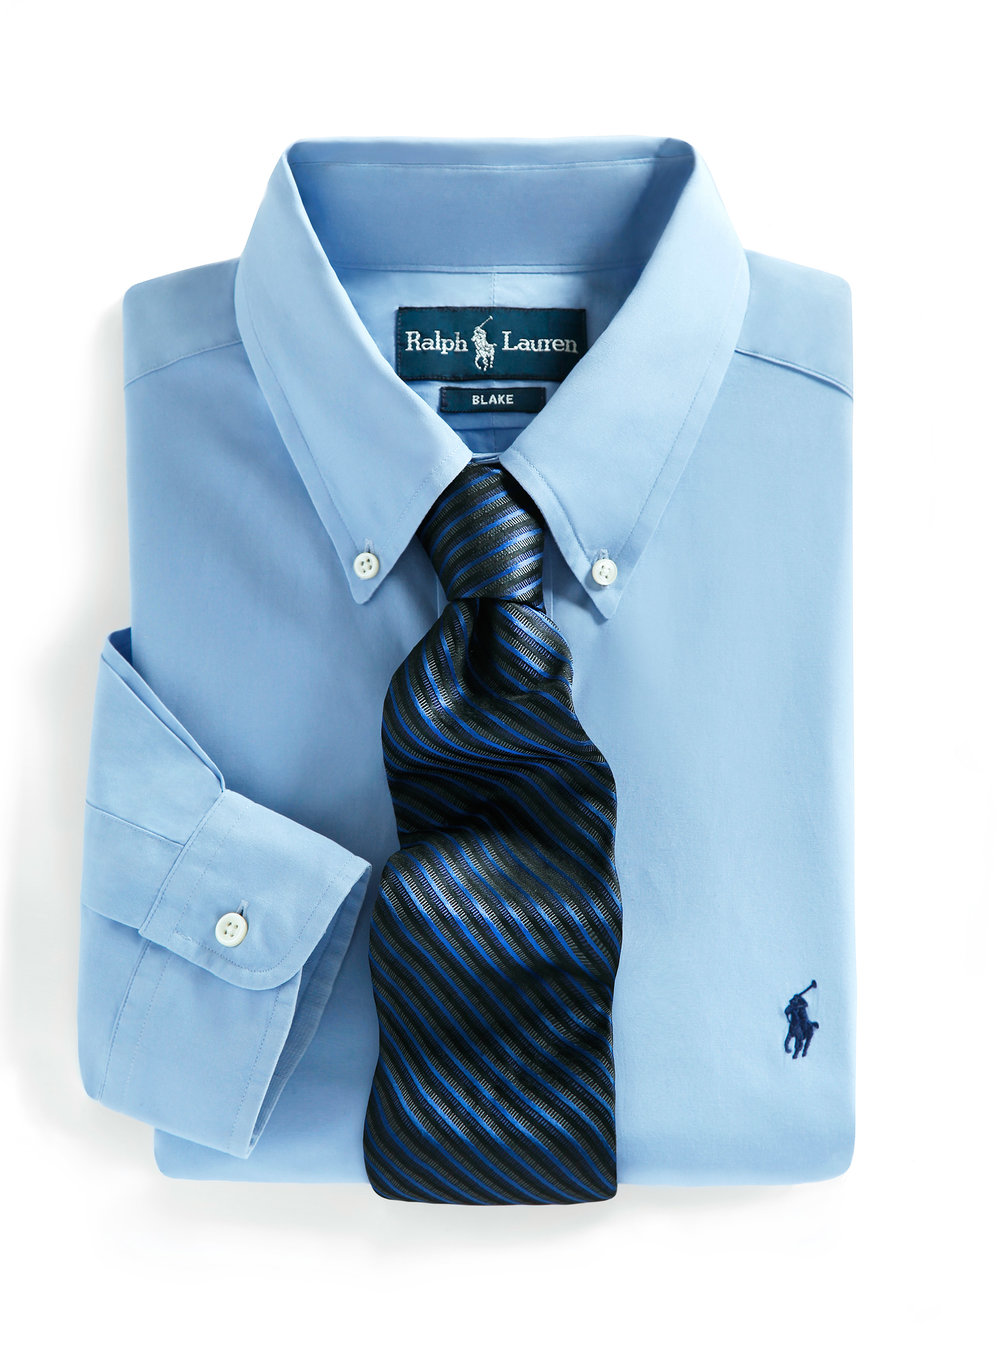 rl-shirt-with-tie.jpg